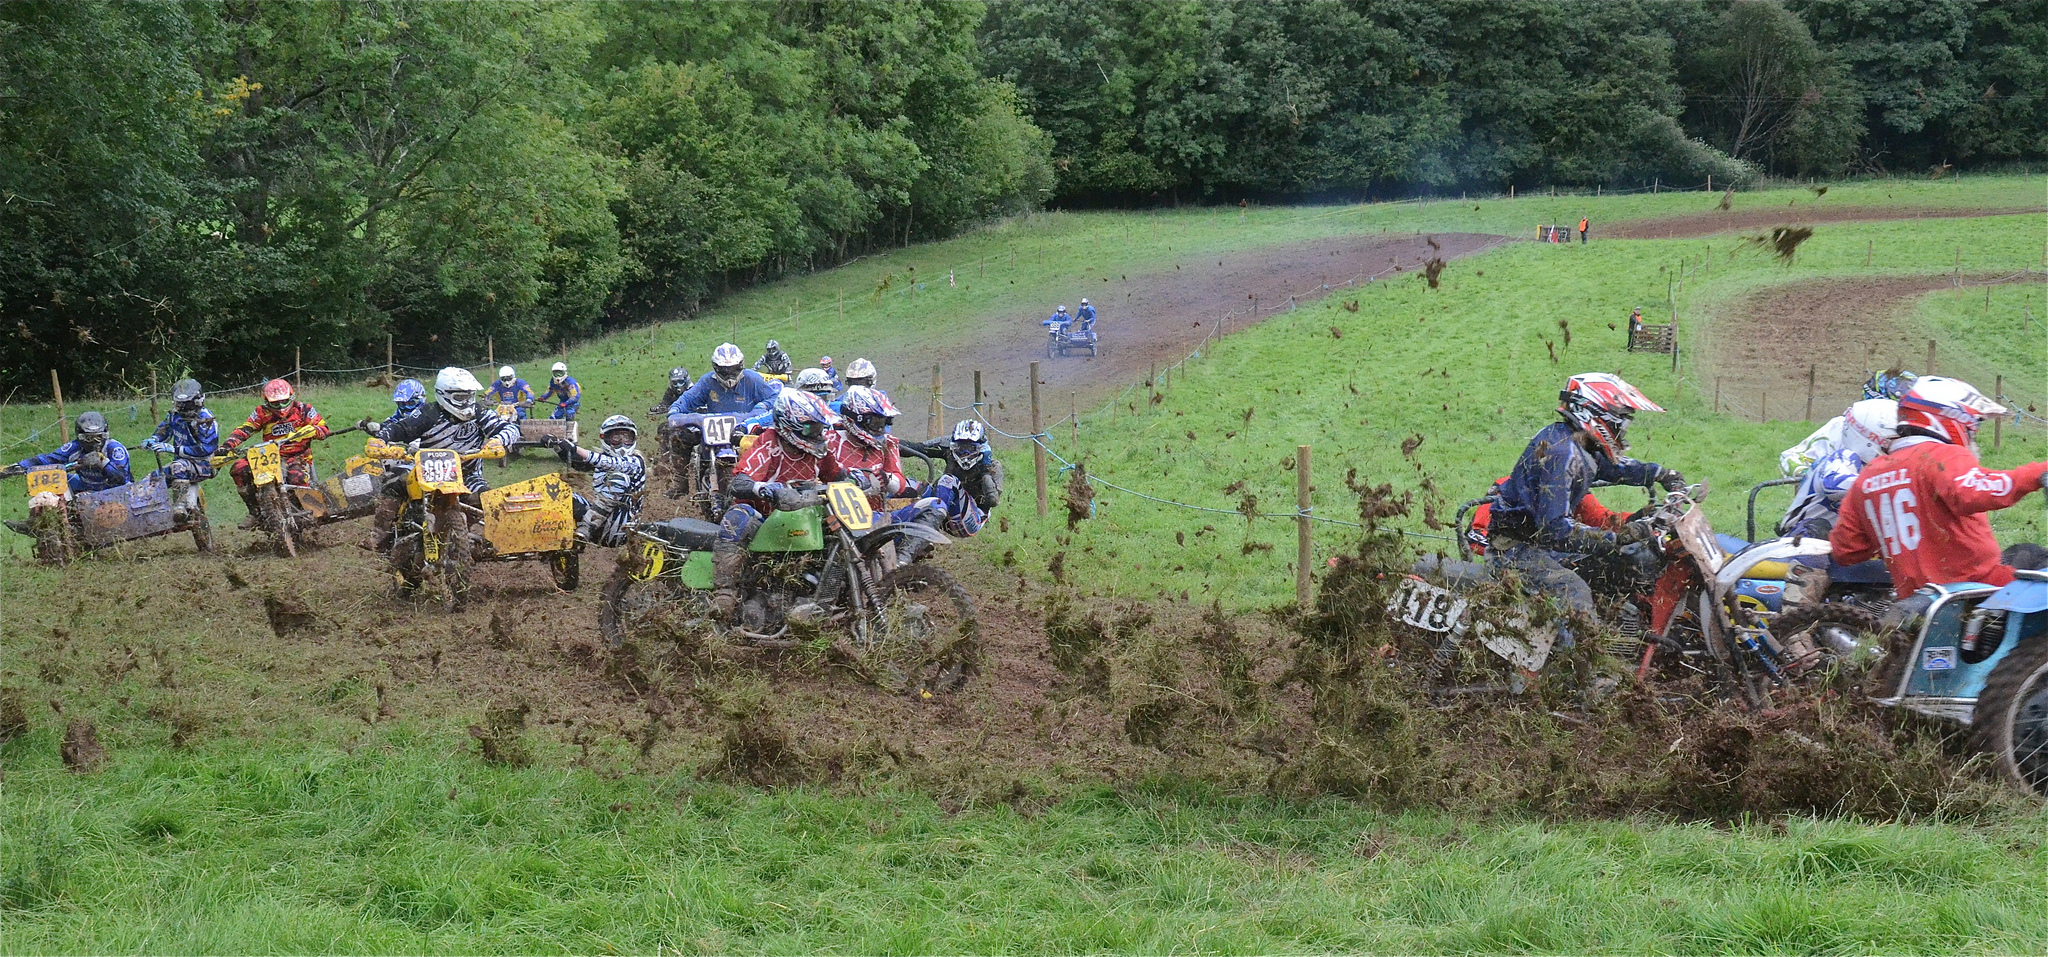 Llanthony Classic Scramble Photos September 2015 classicdirtbikerider.com..50